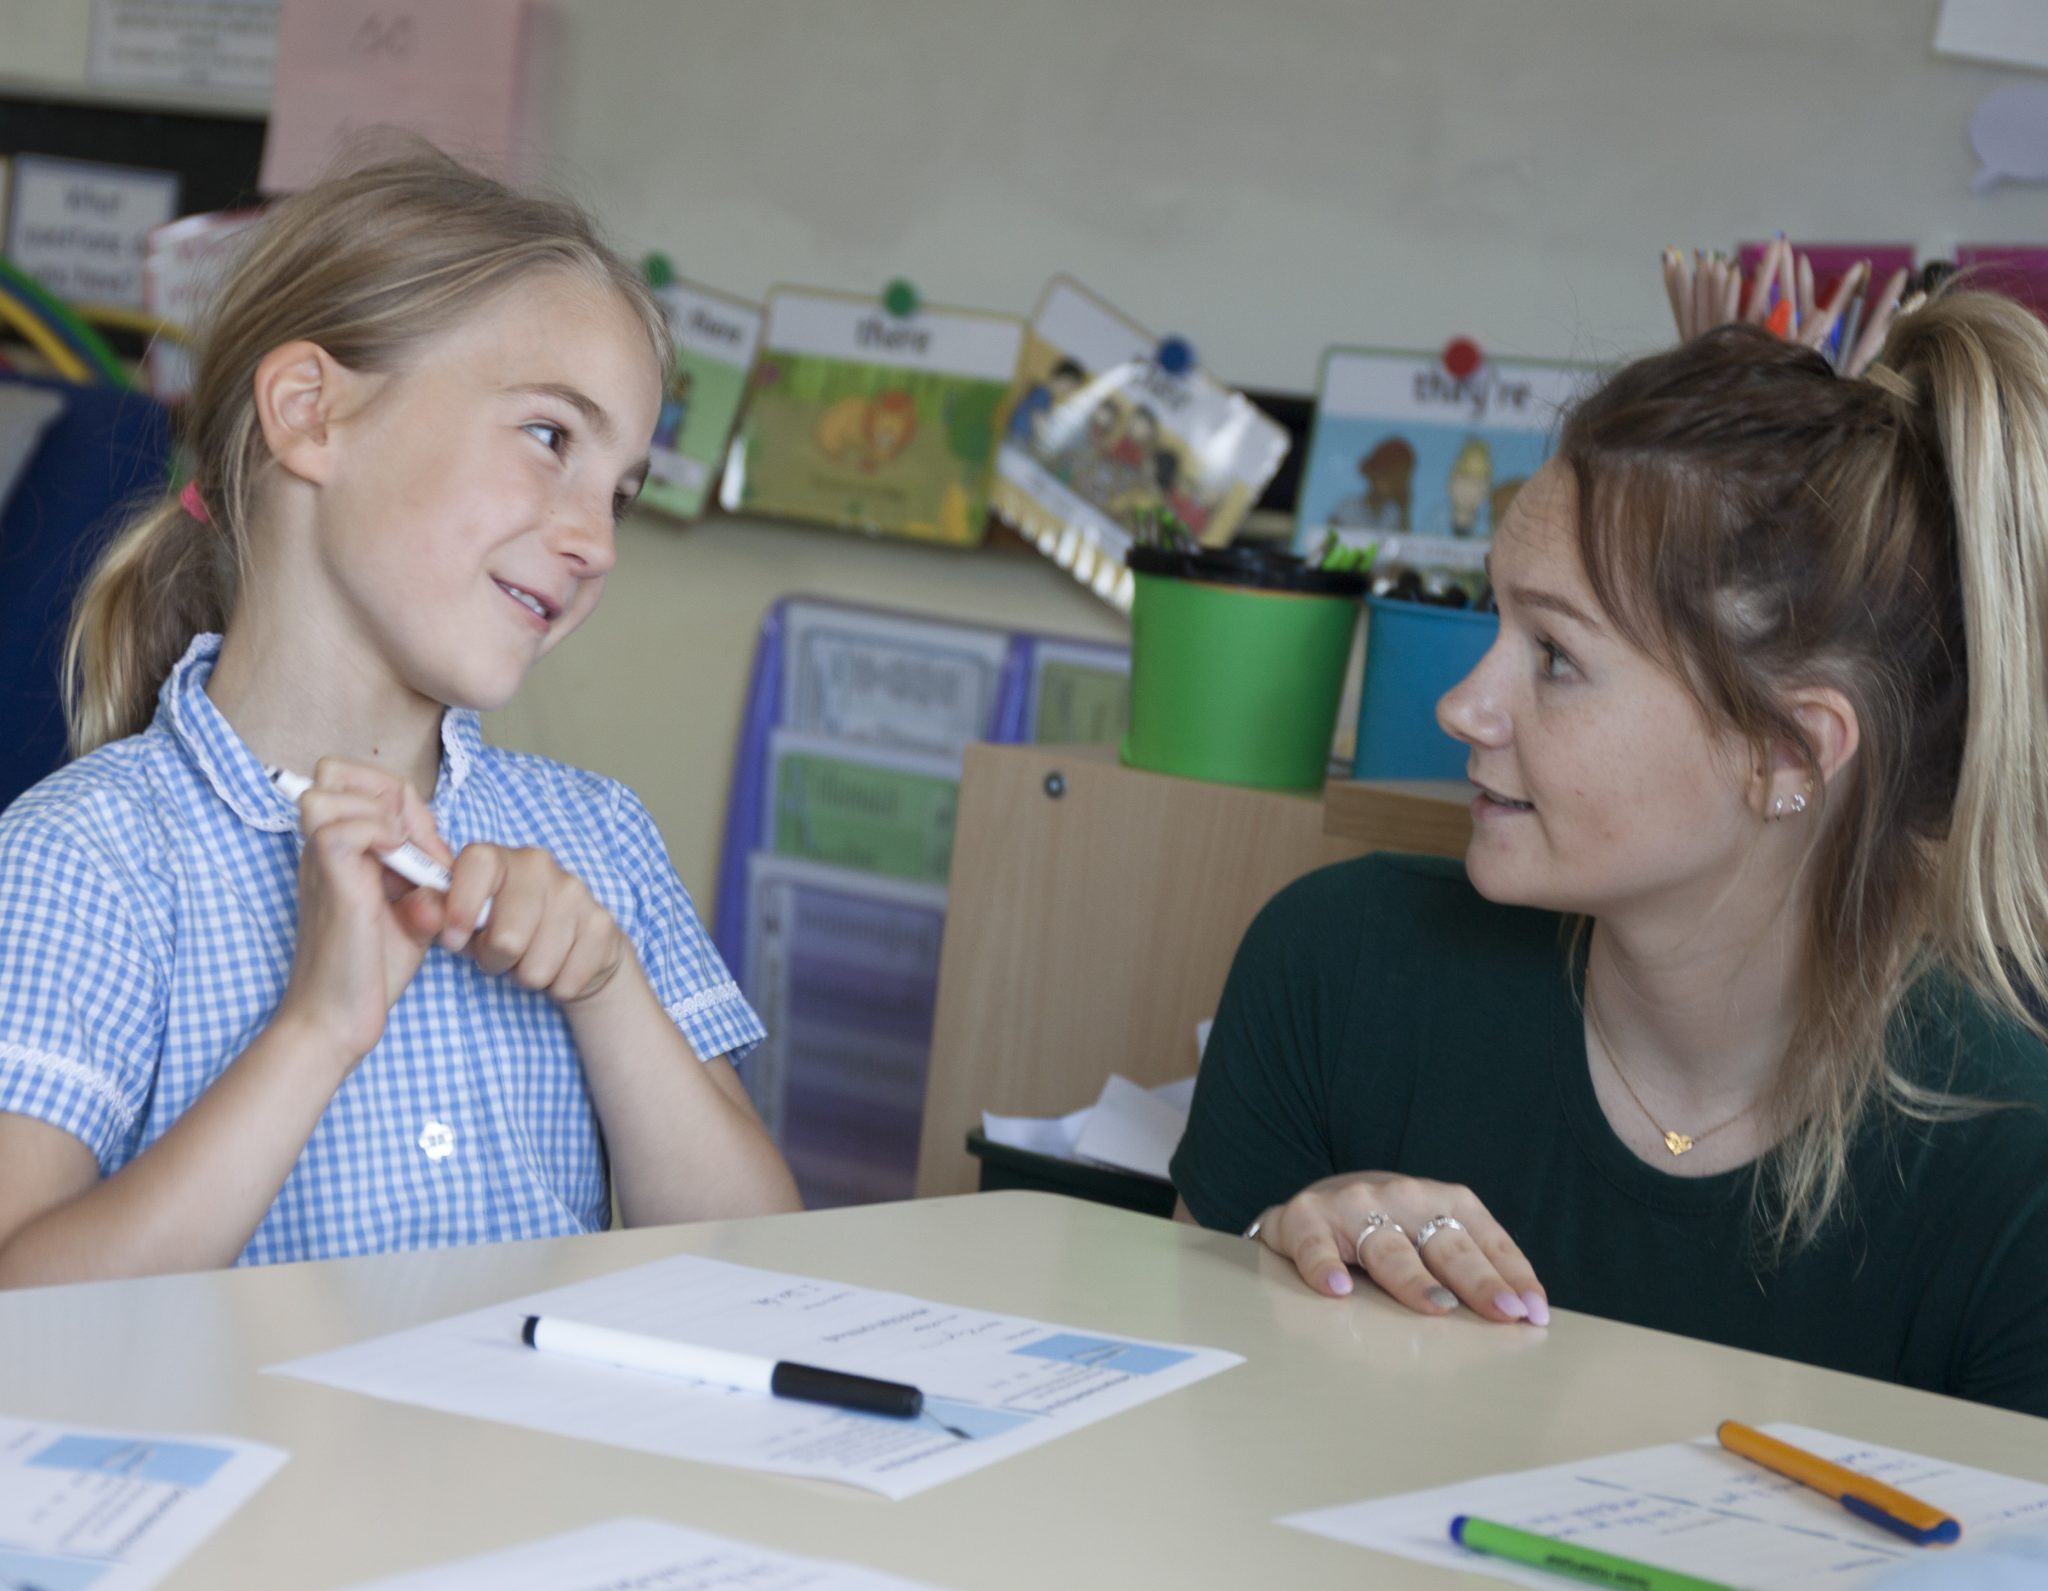 Hampshire News | Top of the class – Hampshire schools benefit from better value by buying classroom equipment from County Council | Andover & Village